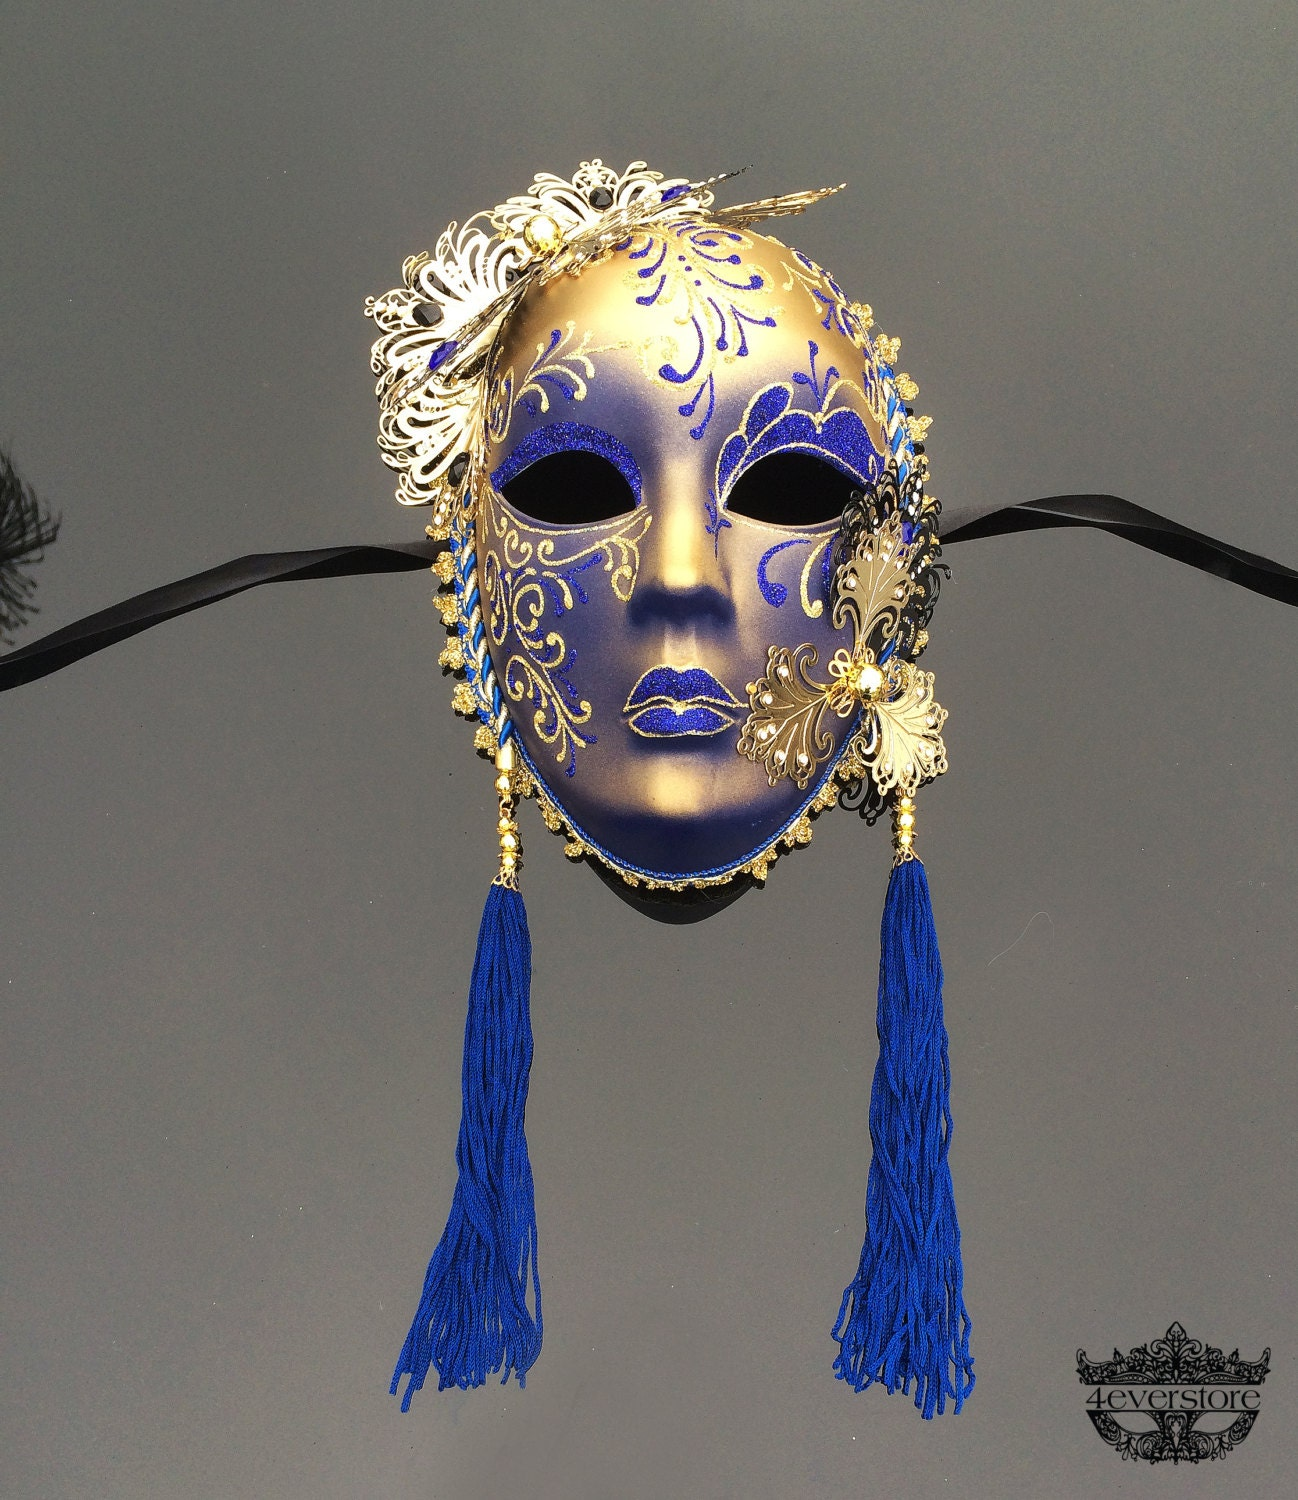 Wall Decoration With Masks : Masquerade mask wall decor ball mardi